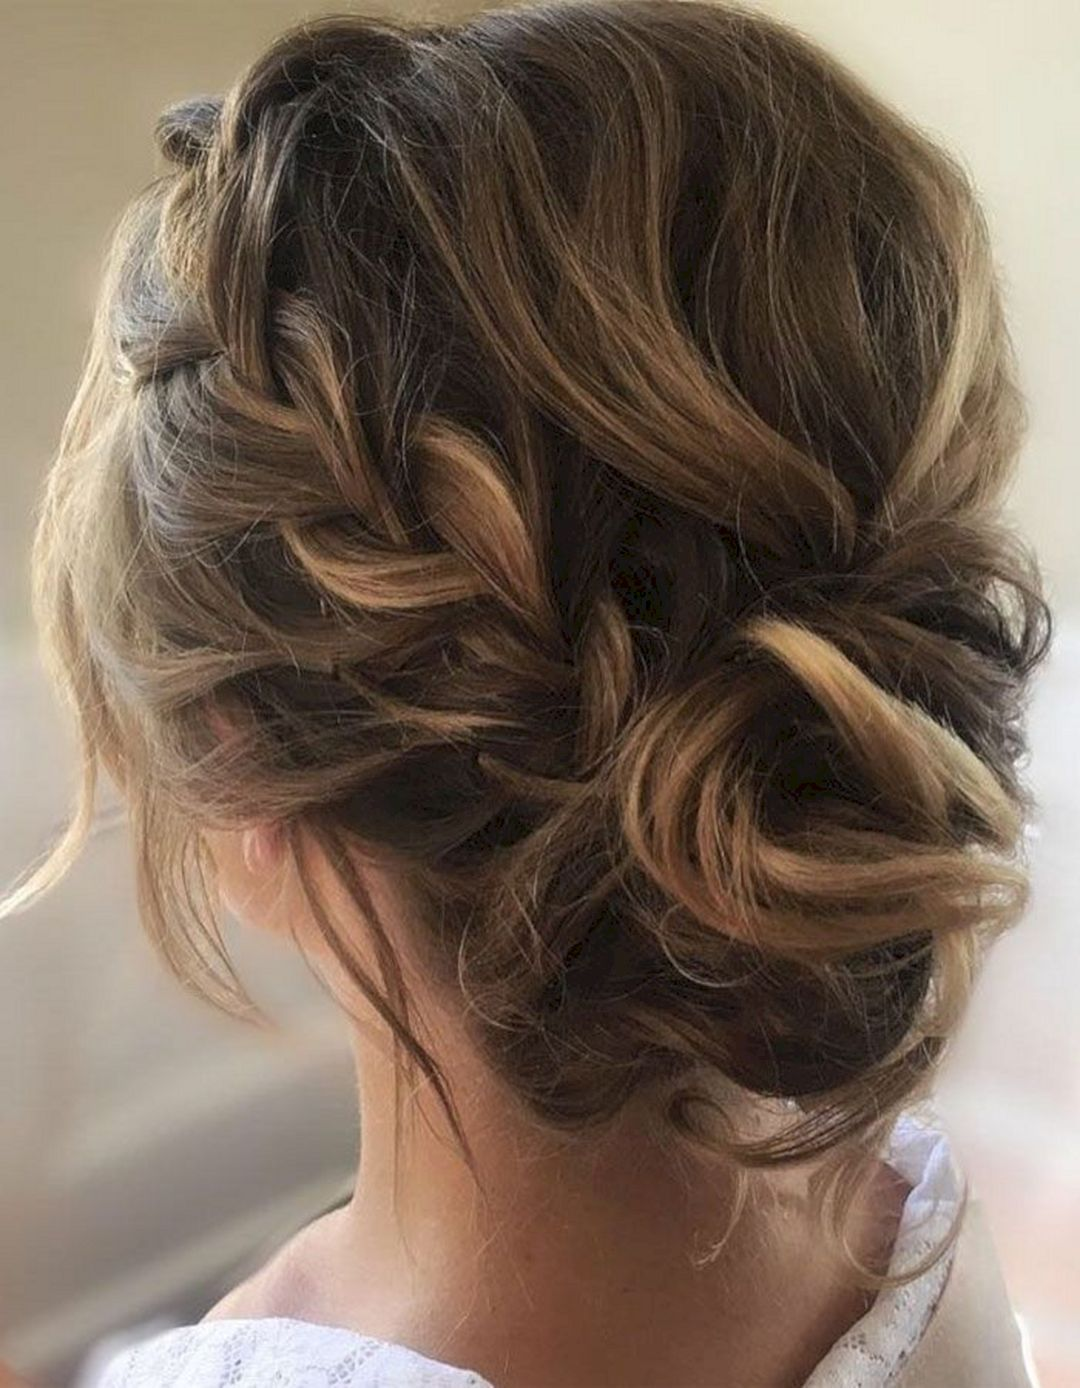 85 Best Inspirations Easy Braided Updo Ideas For Short Hair Https Montenr Com 85 Best Inspirations Braided Hairstyles Updo Hair Styles Bridesmaid Hair Updo